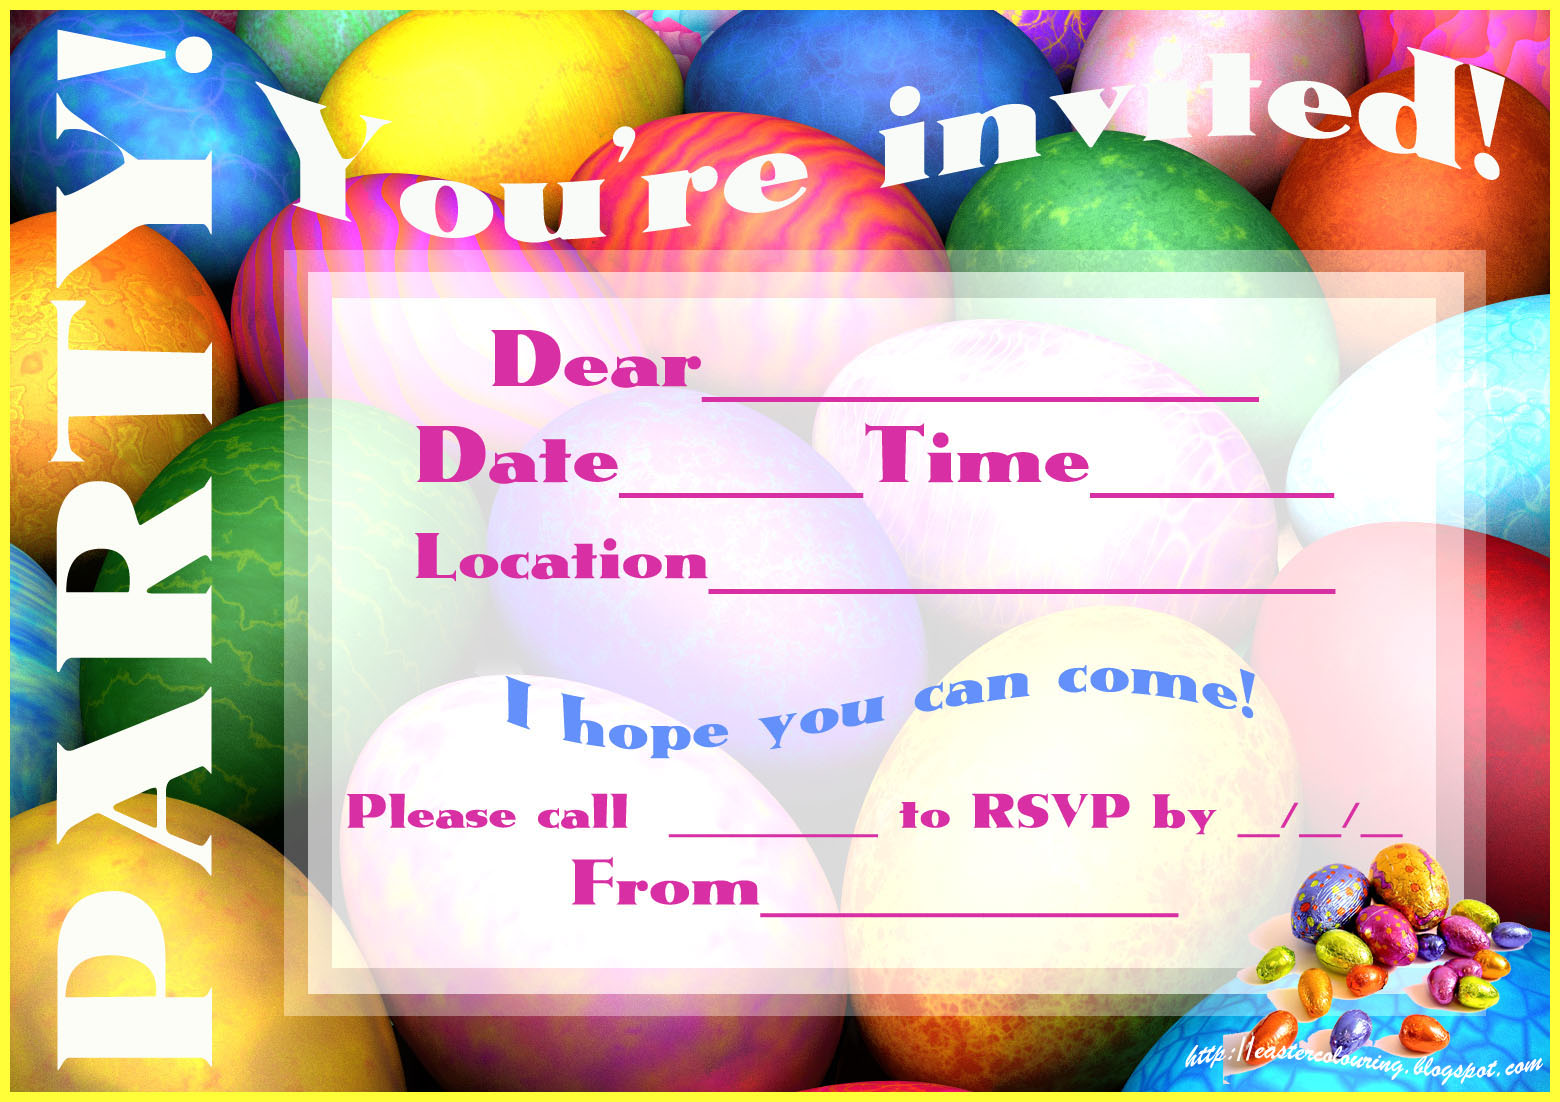 Easter Party Invitations is an amazing ideas you had to choose for invitation design